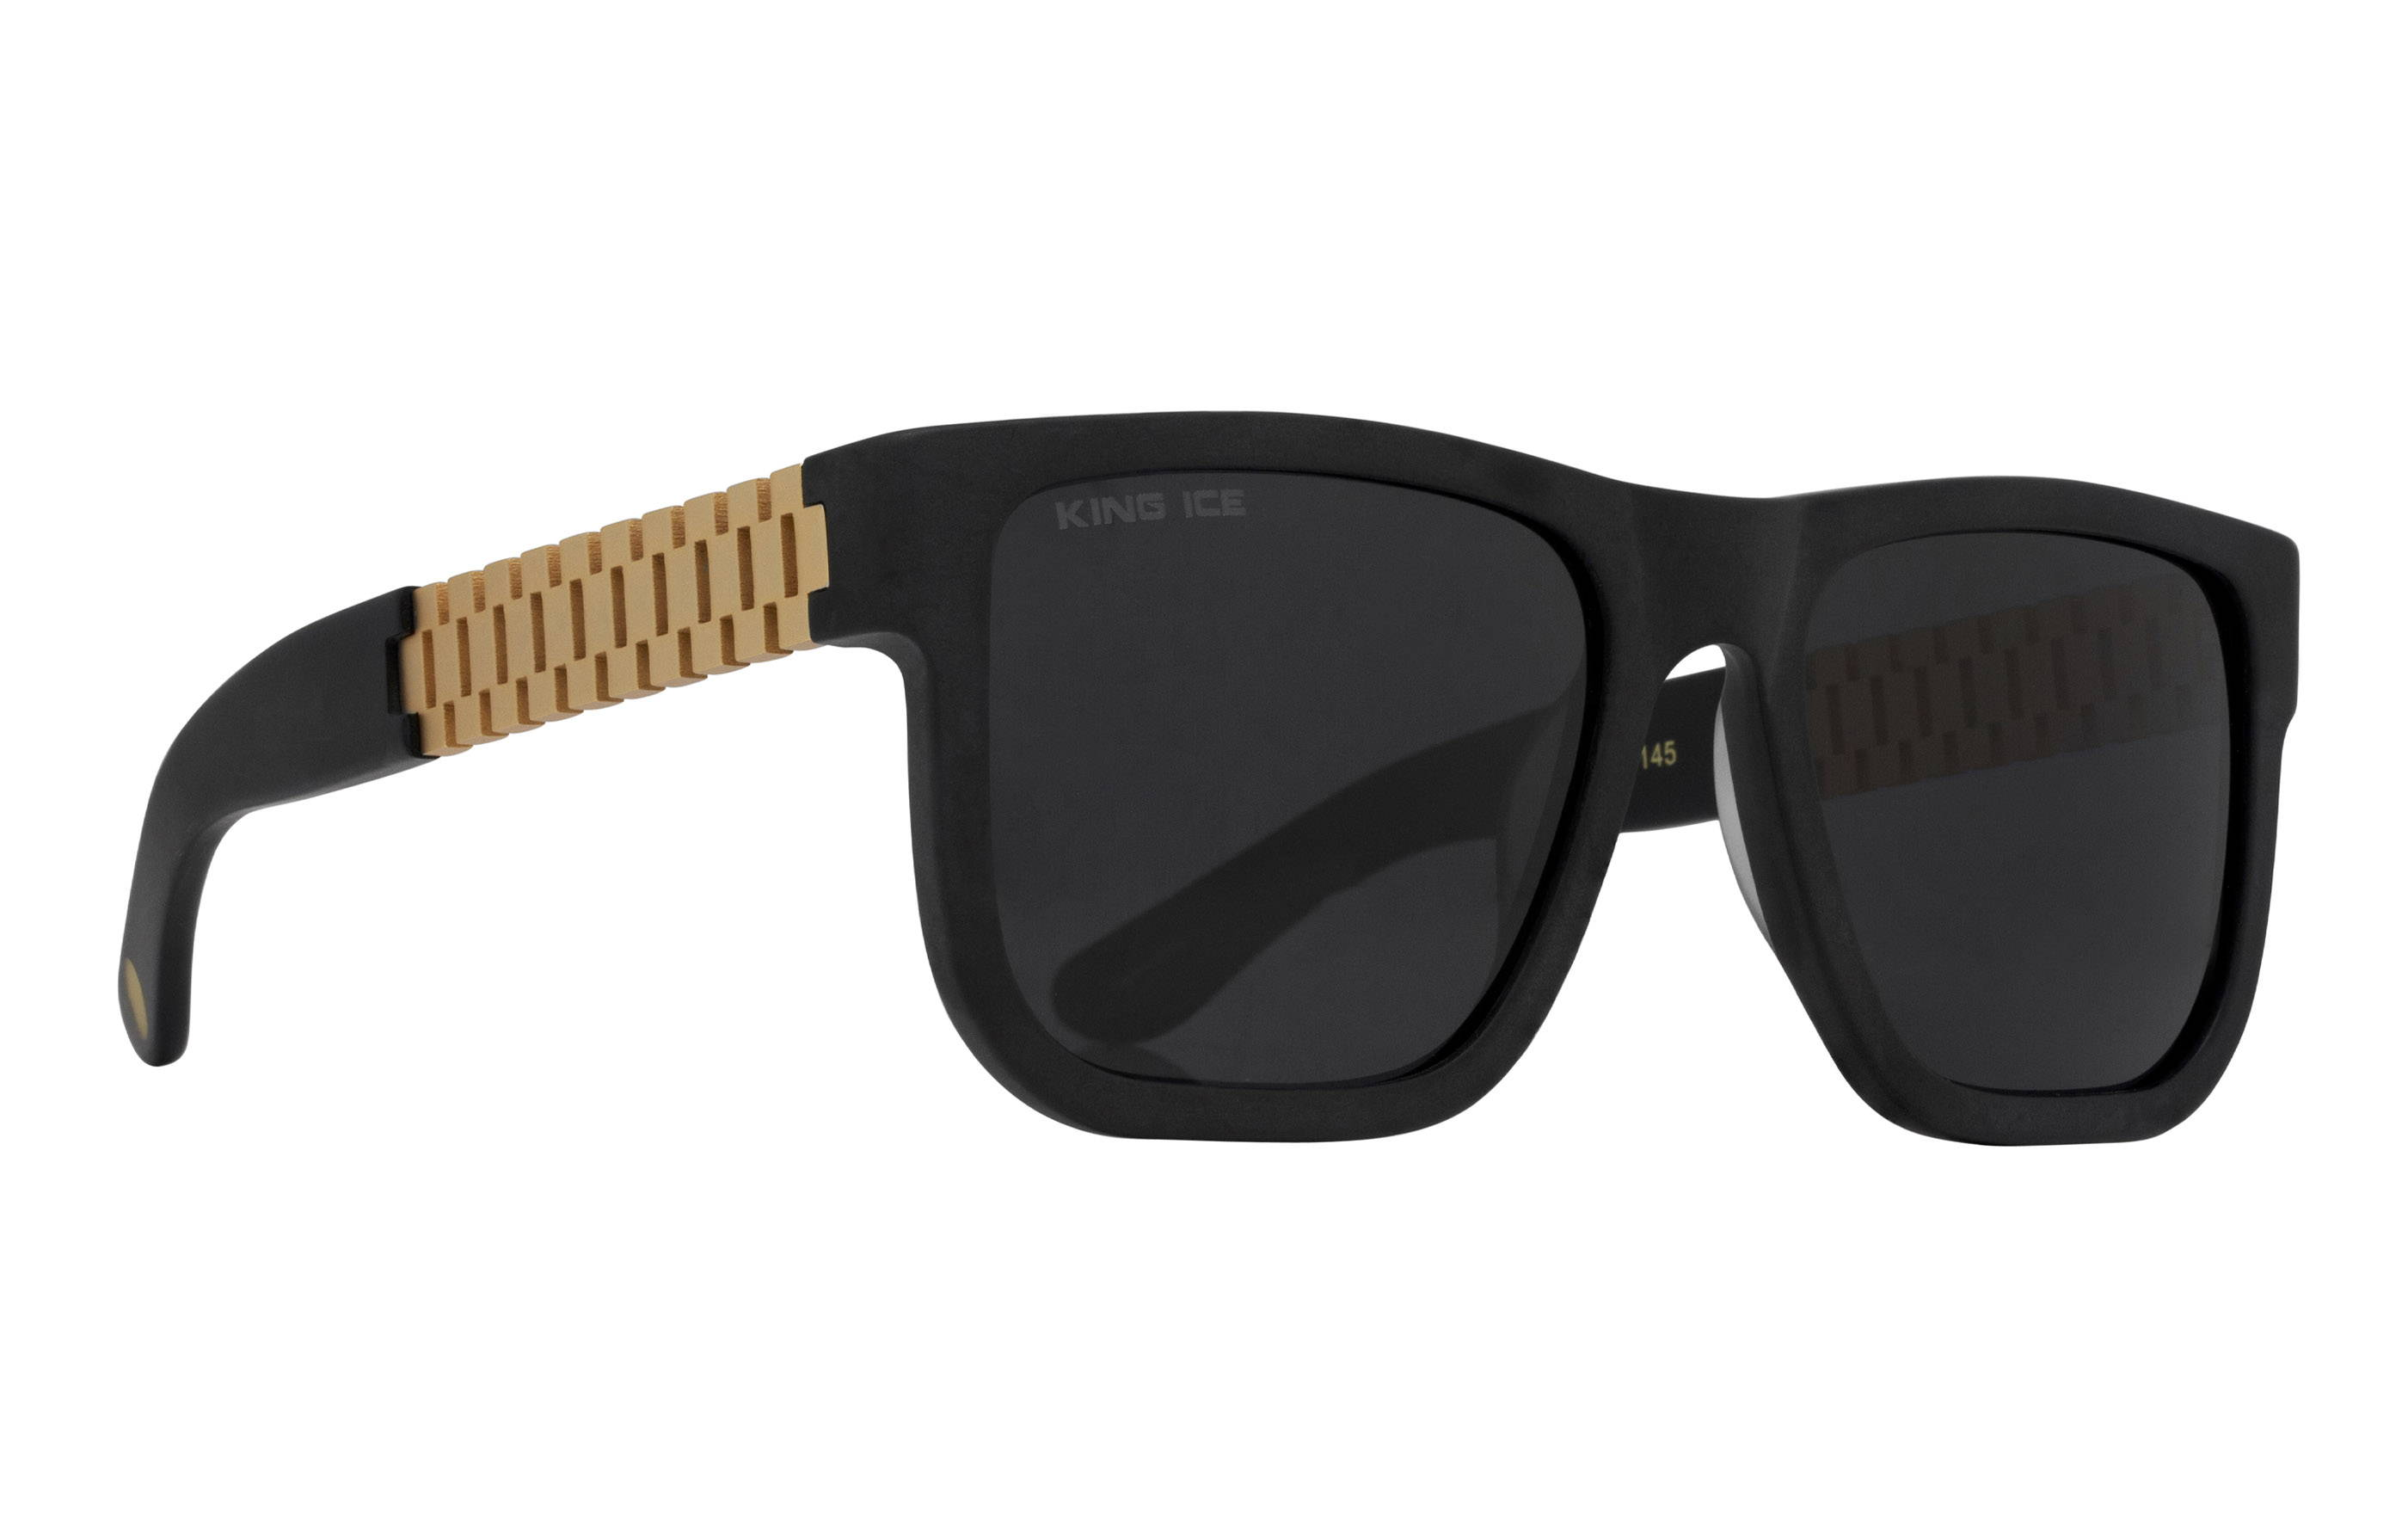 King Ice Gold Link Shades with Matte Black Frame